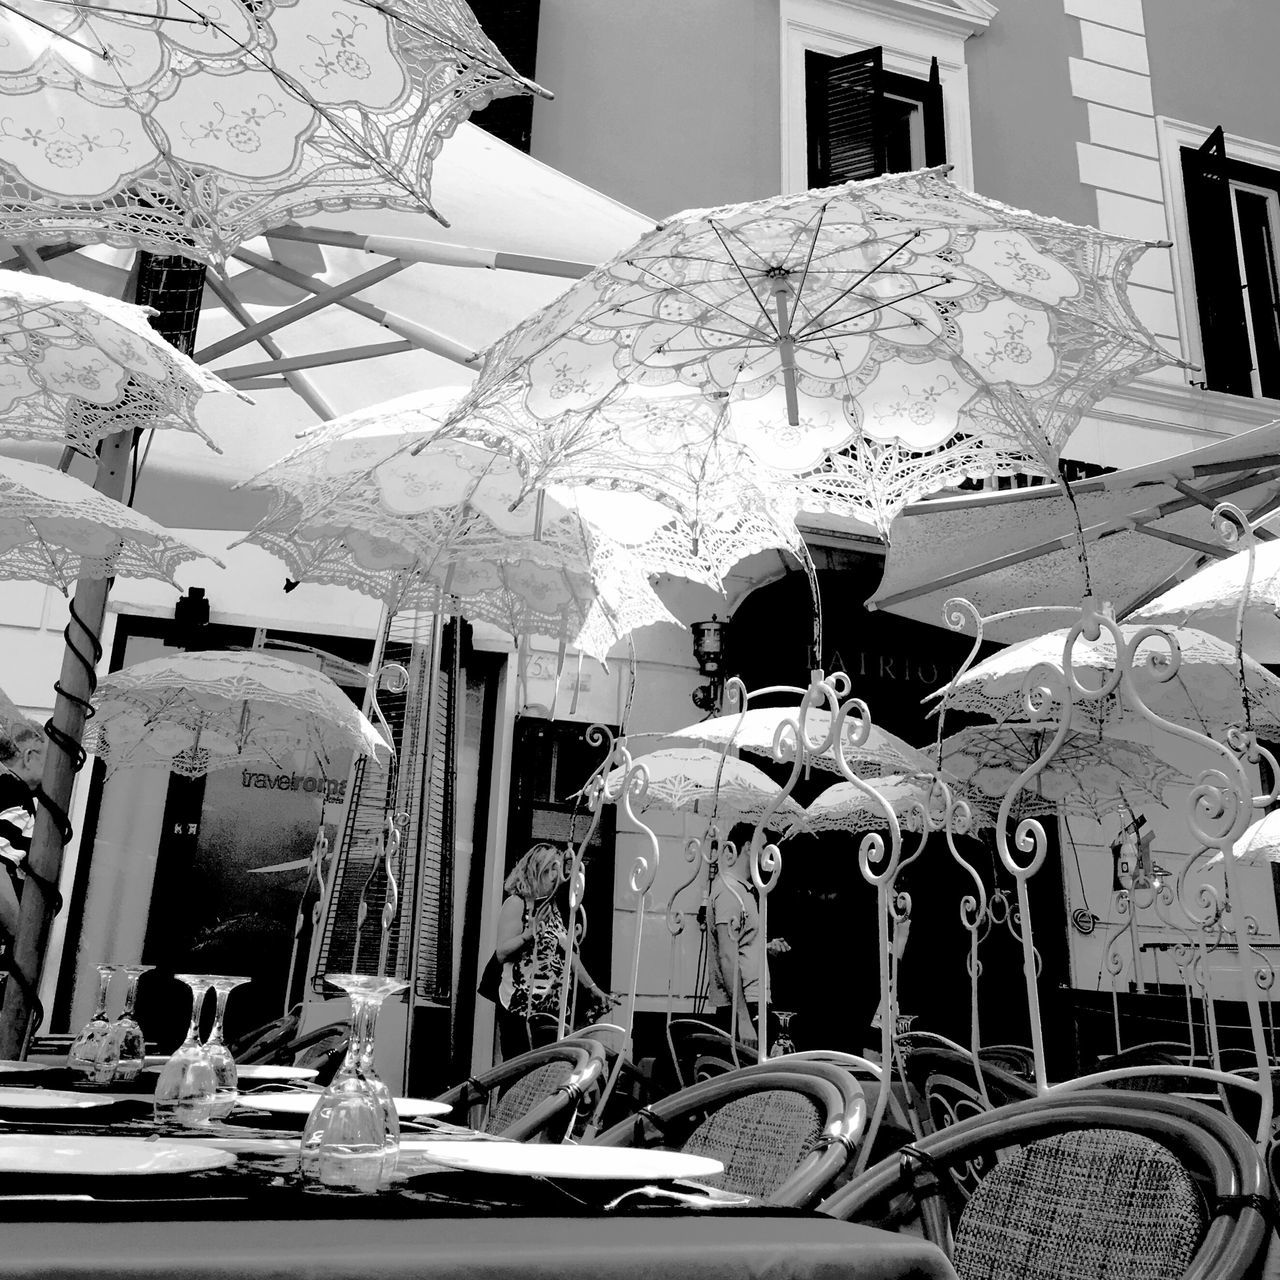 Architecture Day Neighborhood Map The Street Photographer - 2017 EyeEm Awards Rome Rome Italy Rome, Italy Lace Umbrella Outdoor Dining  Outdoor Restaurant Streetphotography Street Photography Blackandwhite Black And White Black & White Black And White Photography Black&white Streetphoto_bw